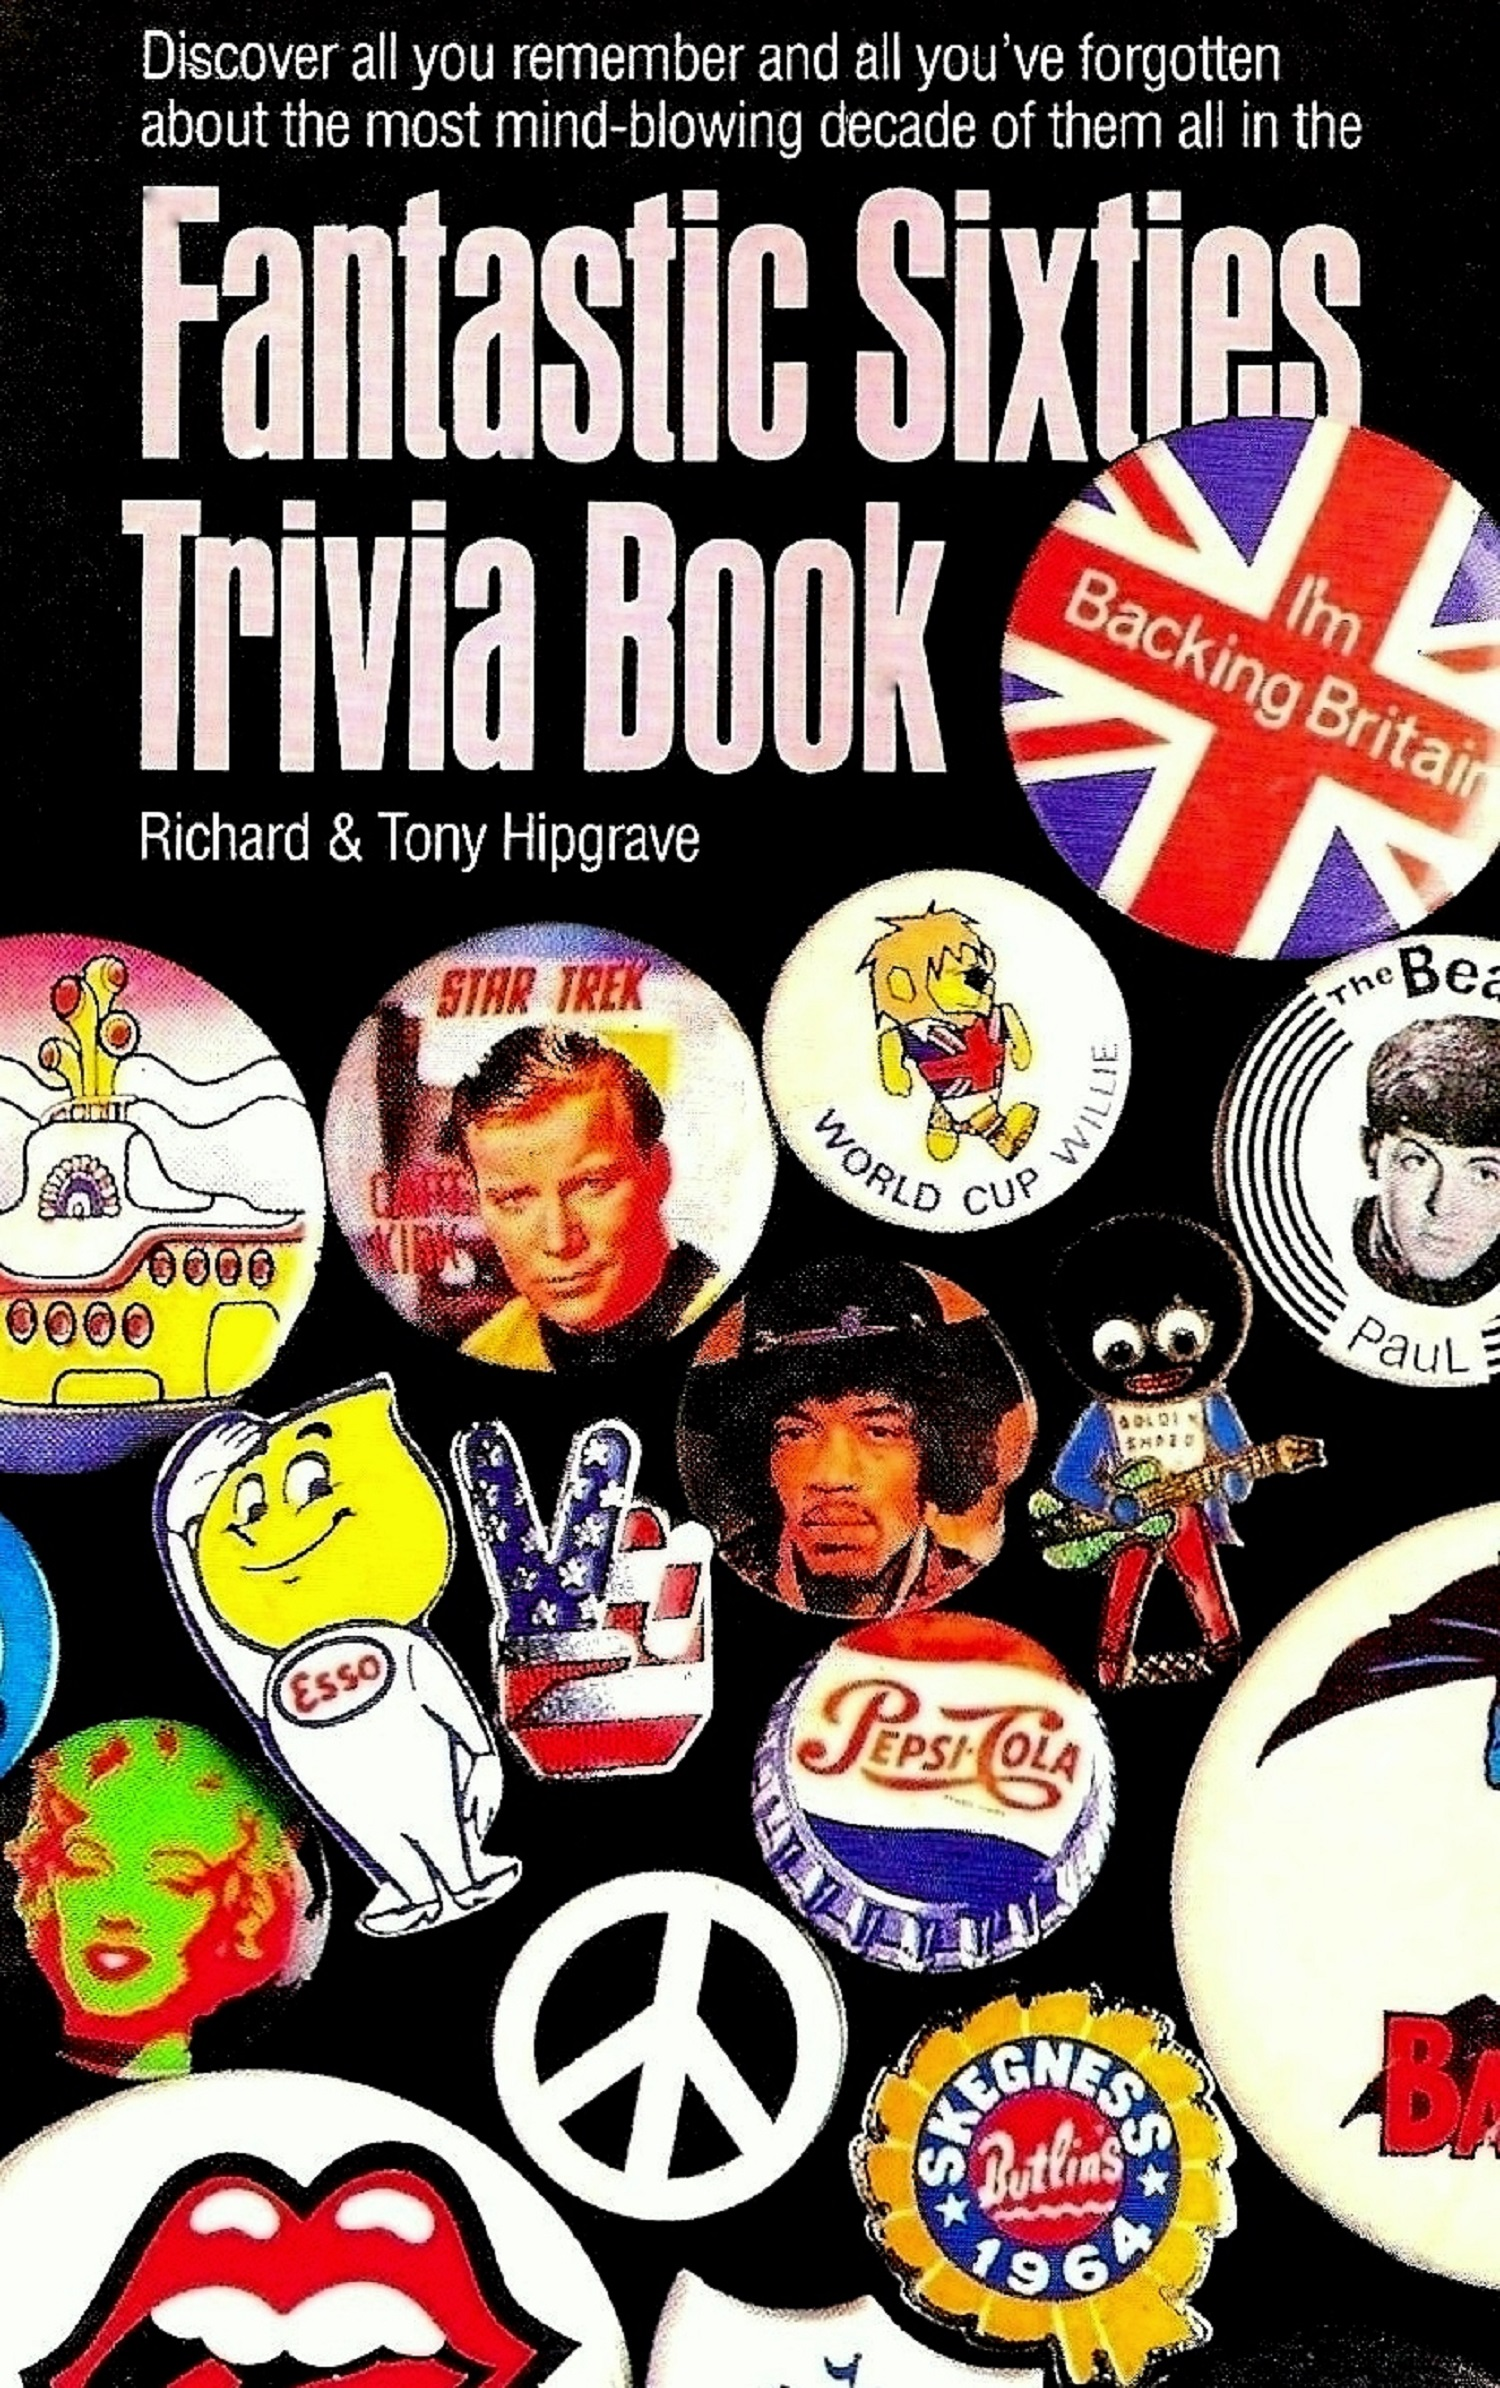 Fantastic Sixties Trivia Book